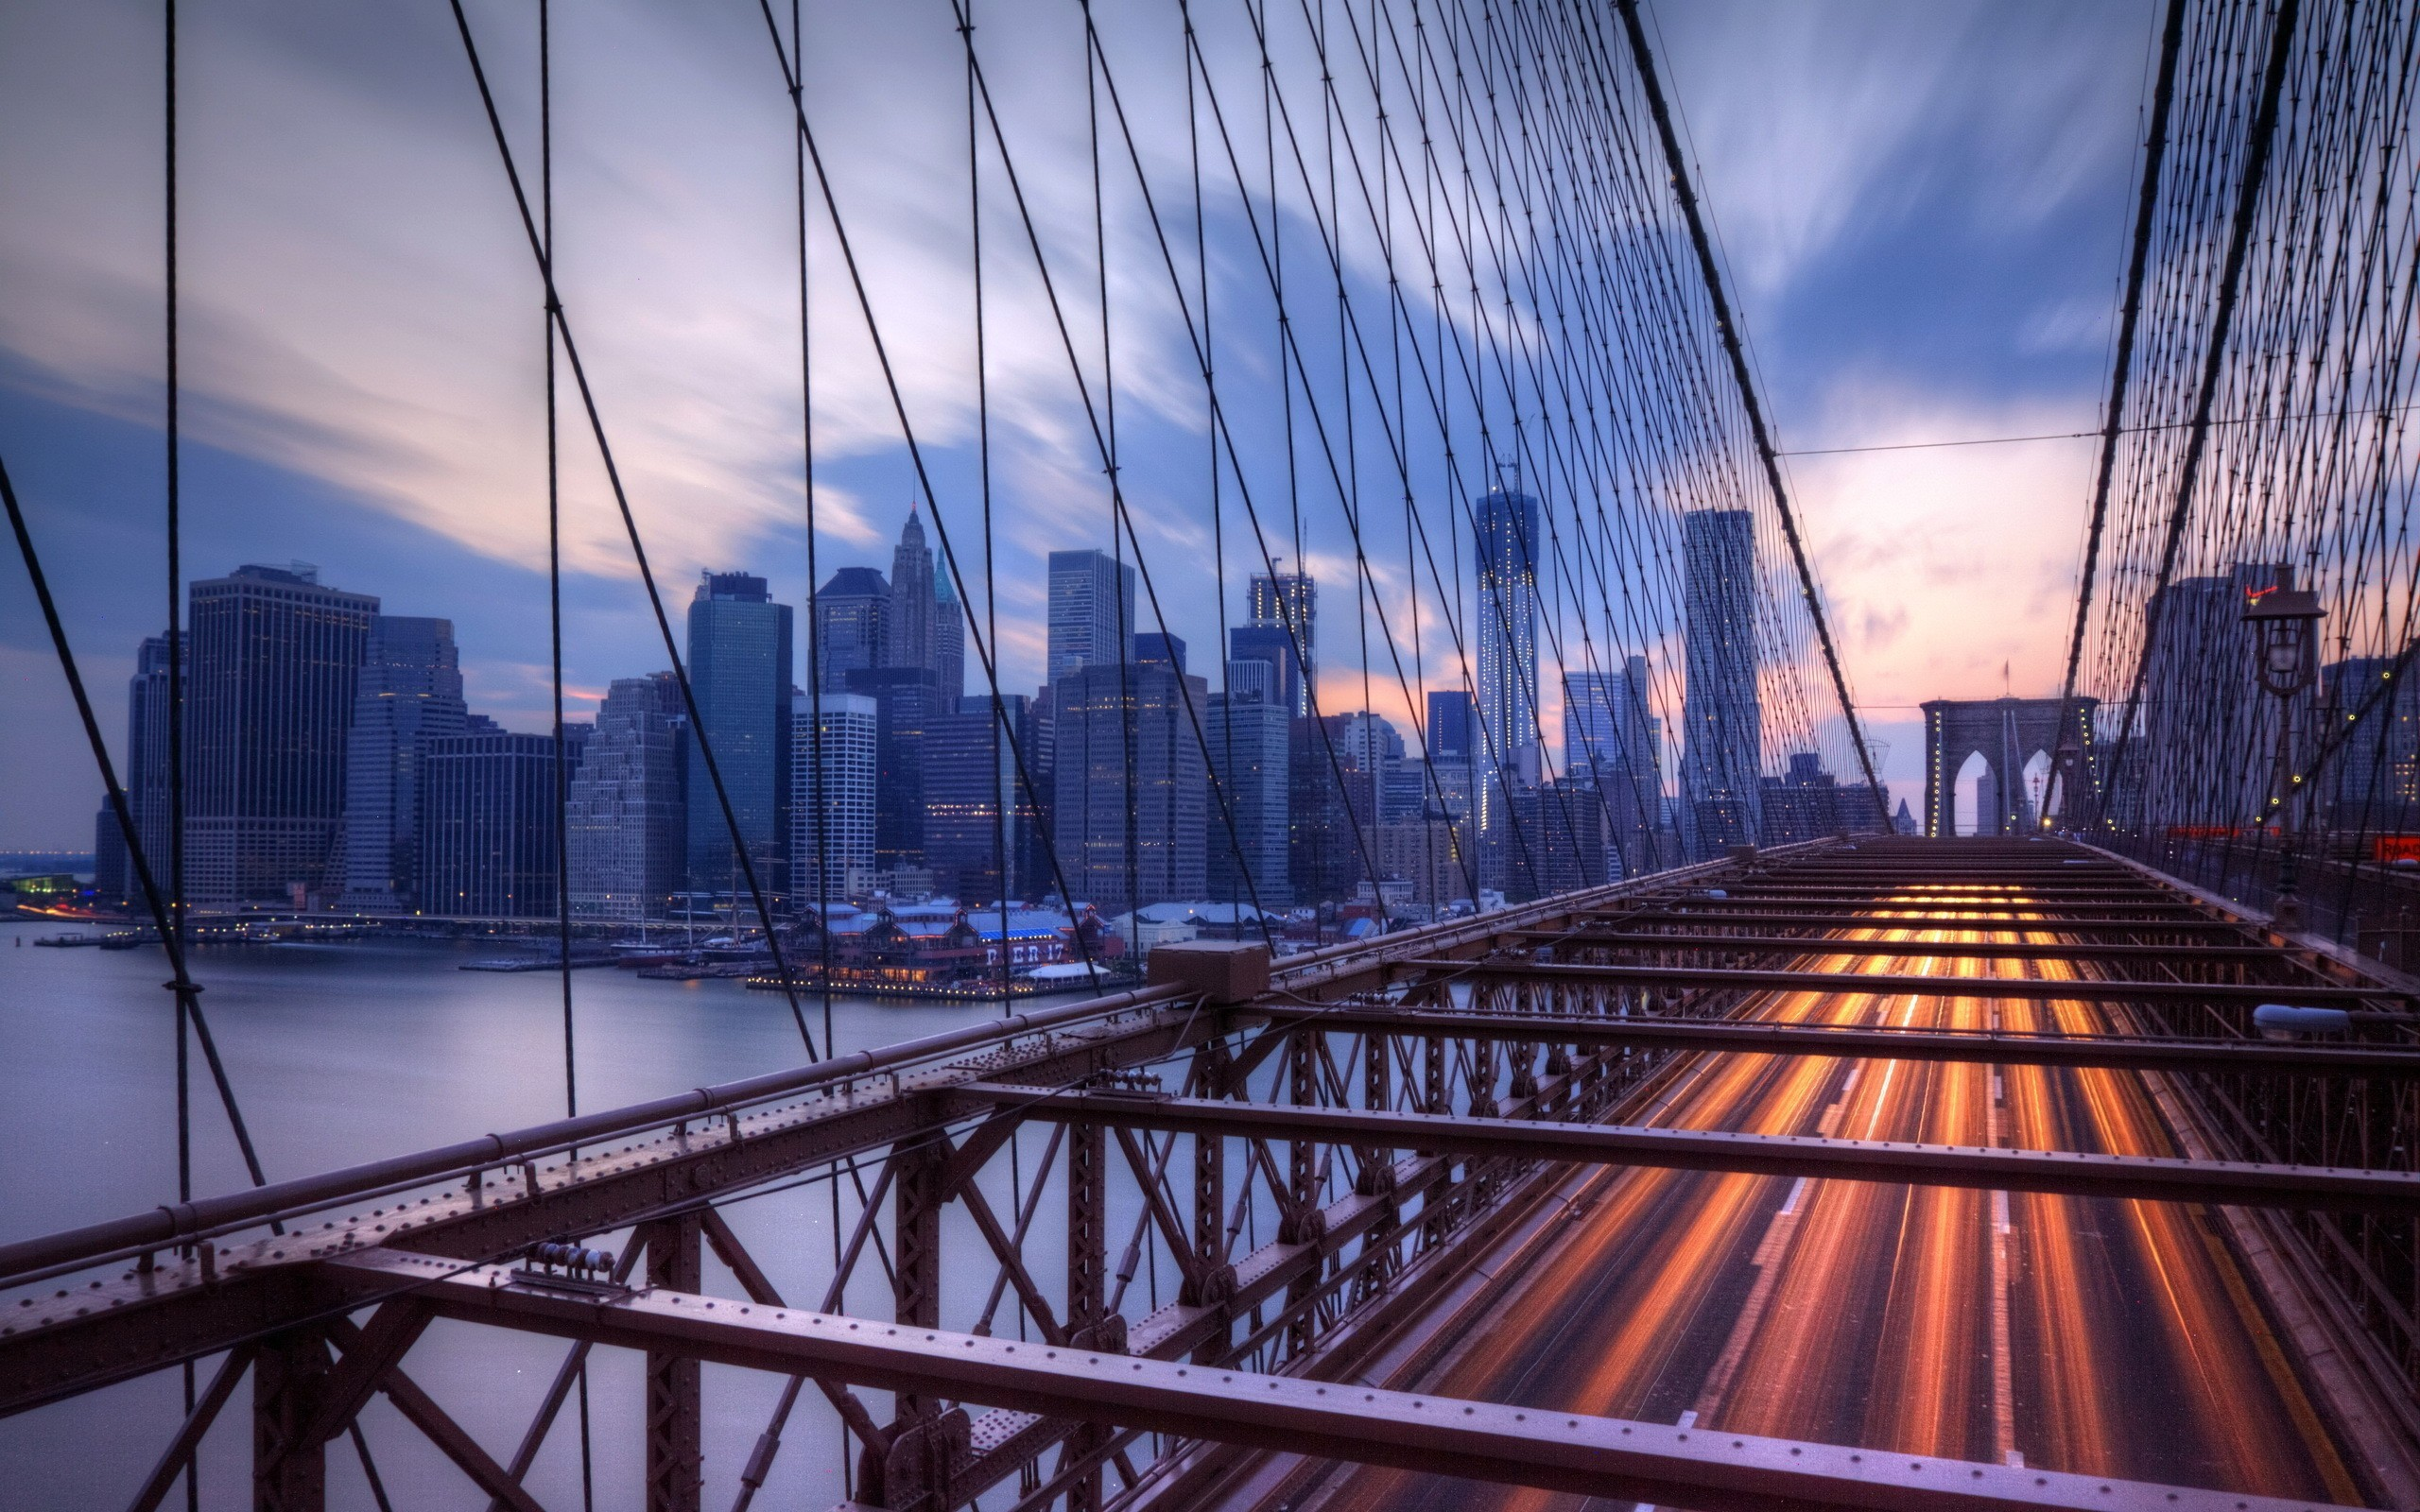 2560x1600 cityscape, City, Building, Bridge, New York City, Brooklyn Bridge Wallpapers  HD / Desktop and Mobile Backgrounds